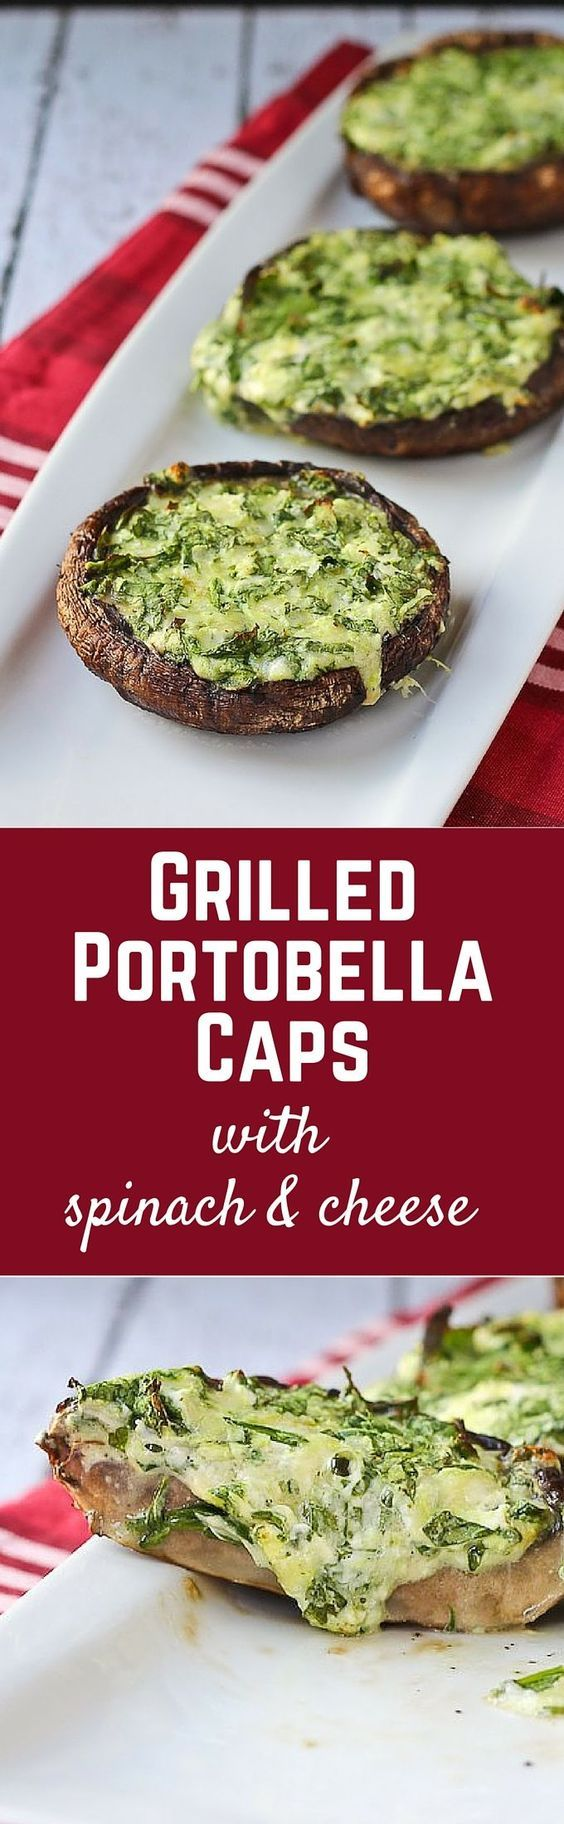 Grilled Portobella Mushrooms with Spinach and Cheese